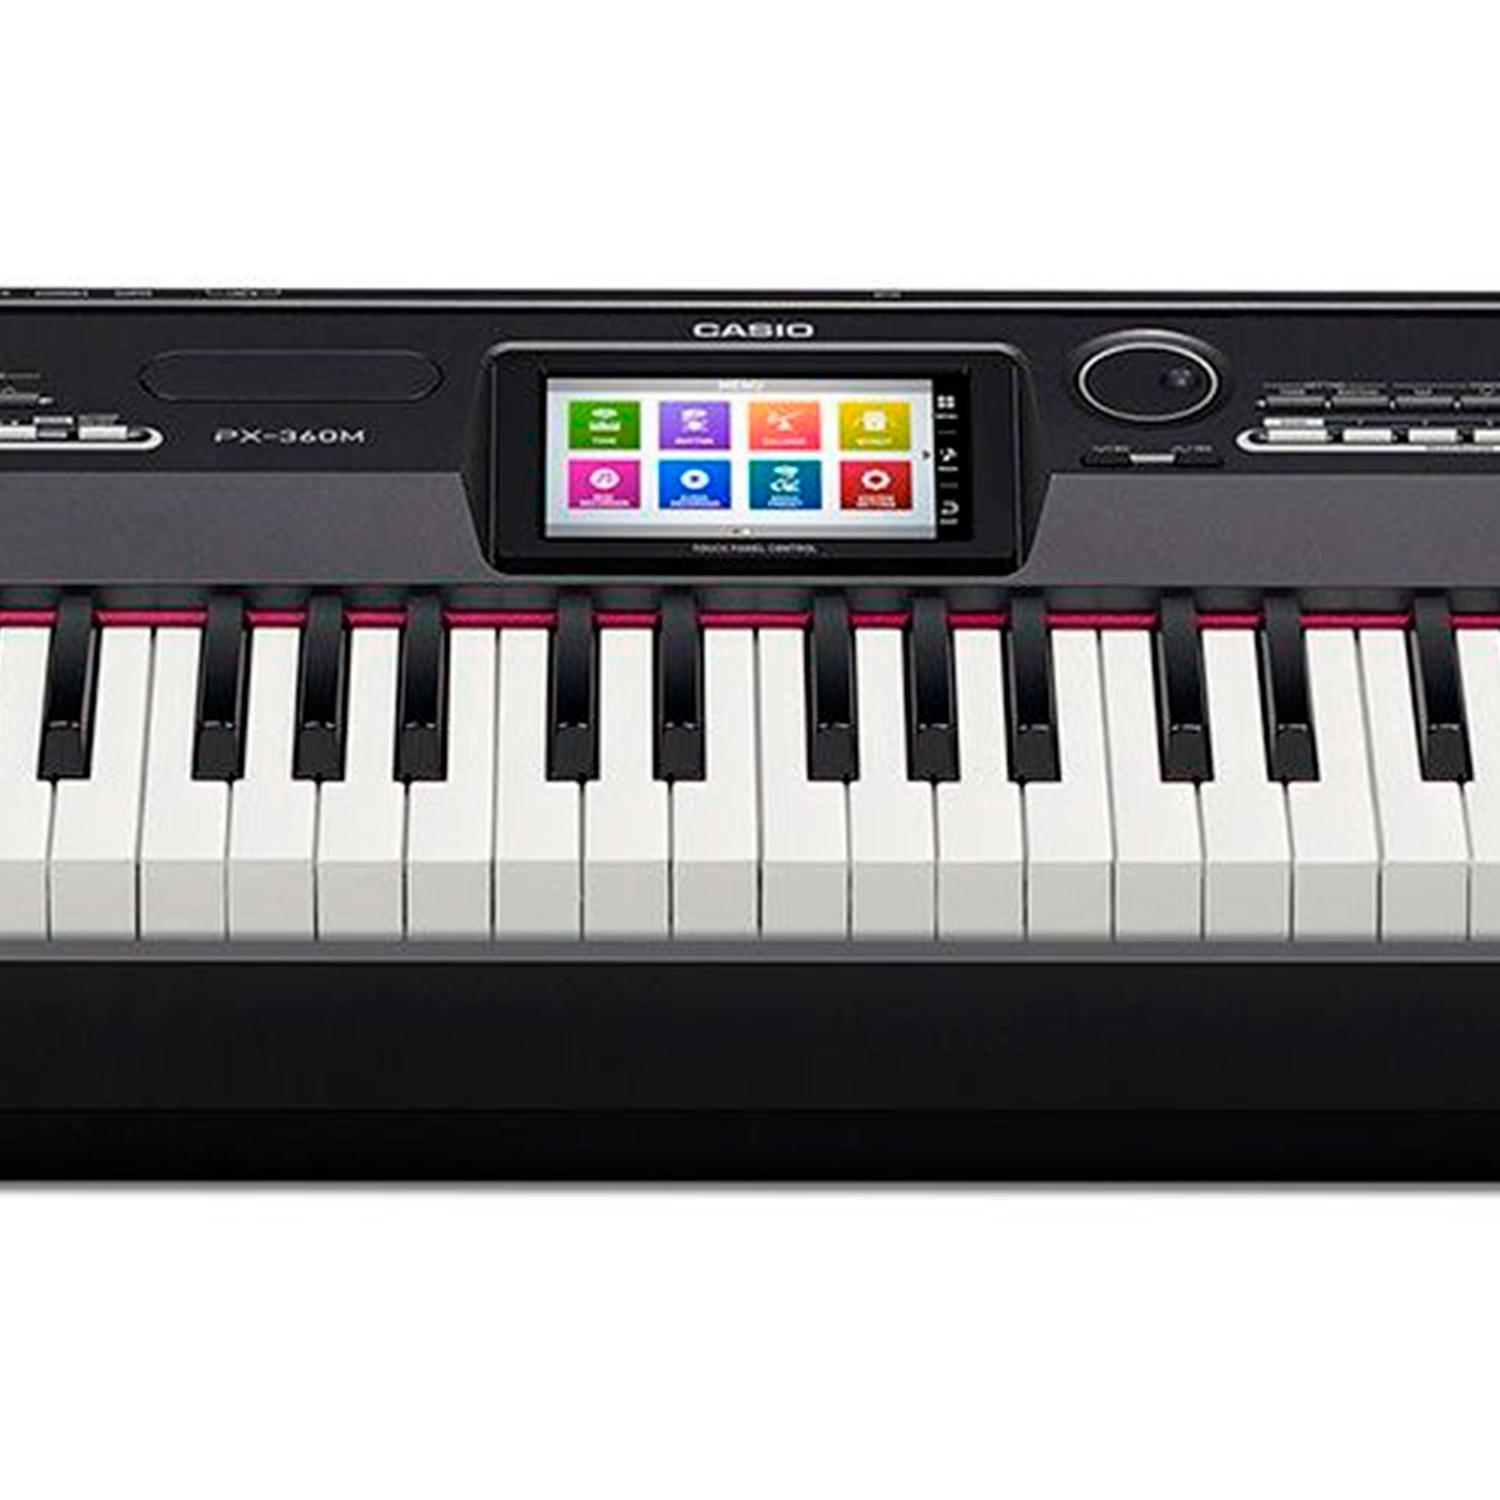 afa64af311e PIANO DIGITAL CASIO PX-360MBK PRIVIA 88 TECLAS   Estante Casio CS67   Pedal  de Sustain Casio SP-33C2   Capa Casio Privia SC 700P R  5.249